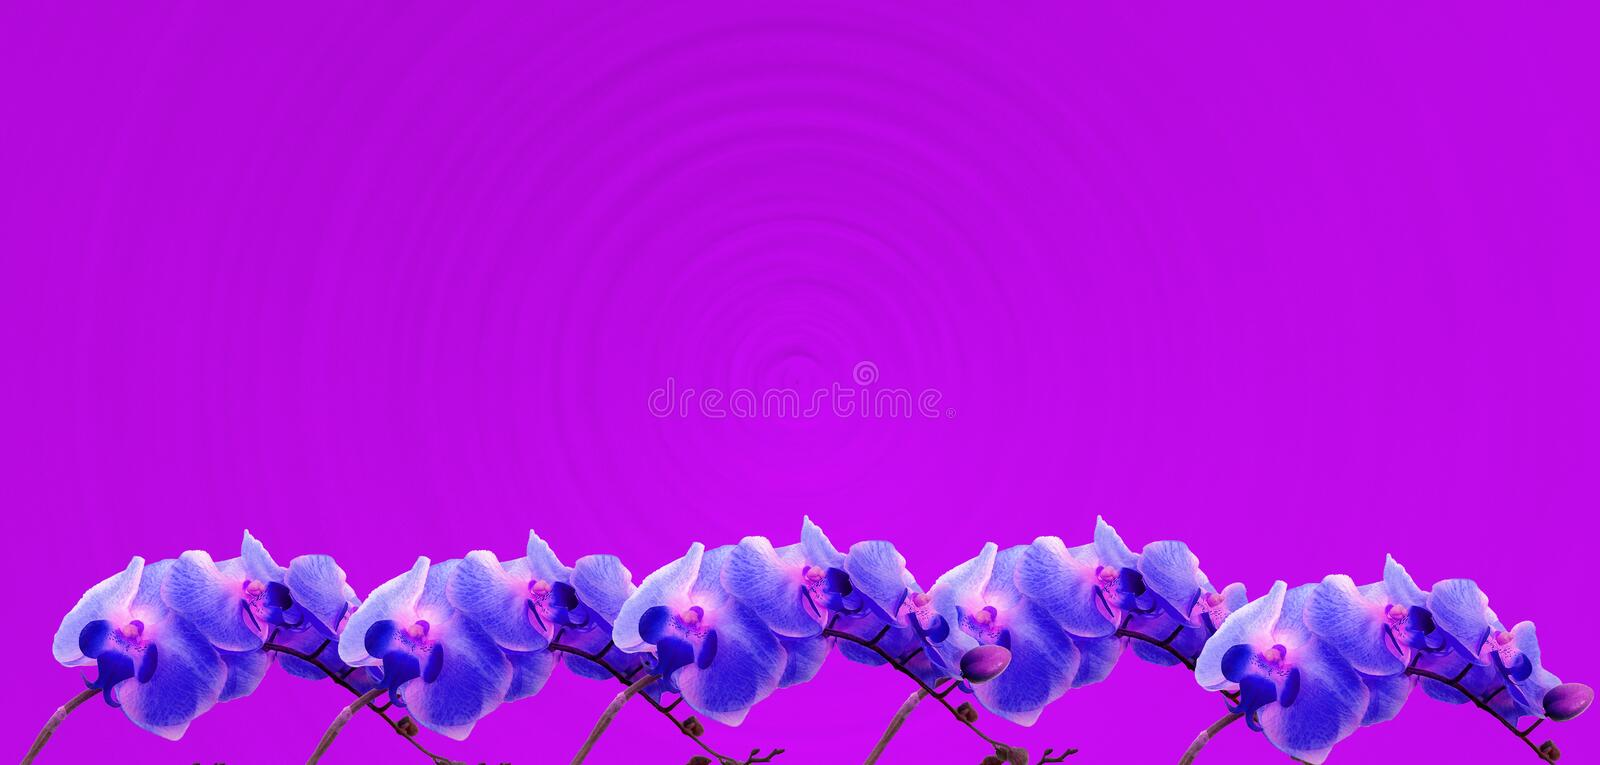 Violet orchids border on a bright fuchsia background royalty free stock photos